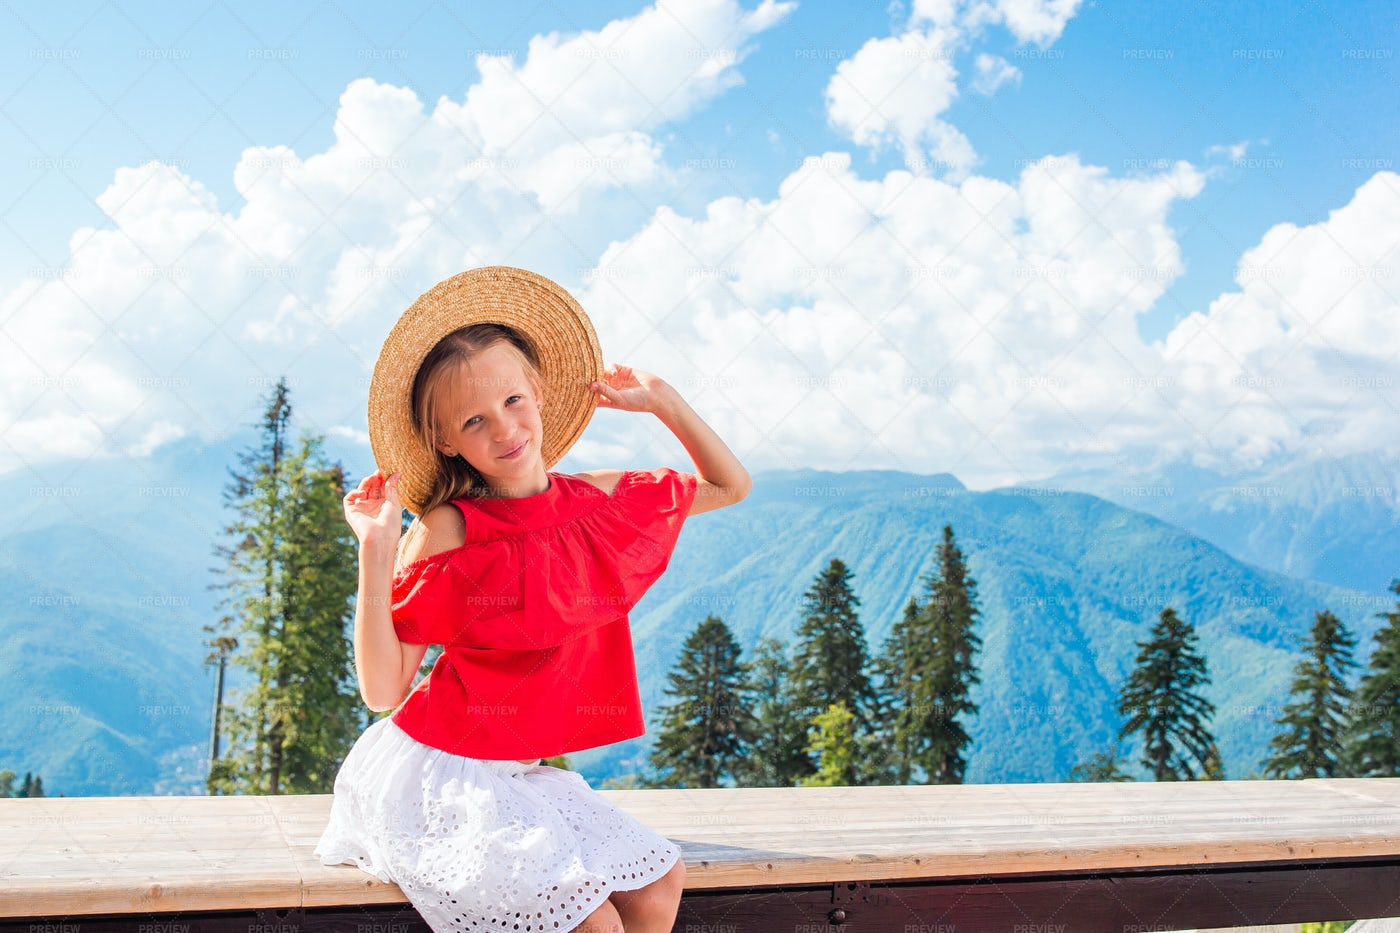 Happy Little Girl In The Mountains: Stock Photos